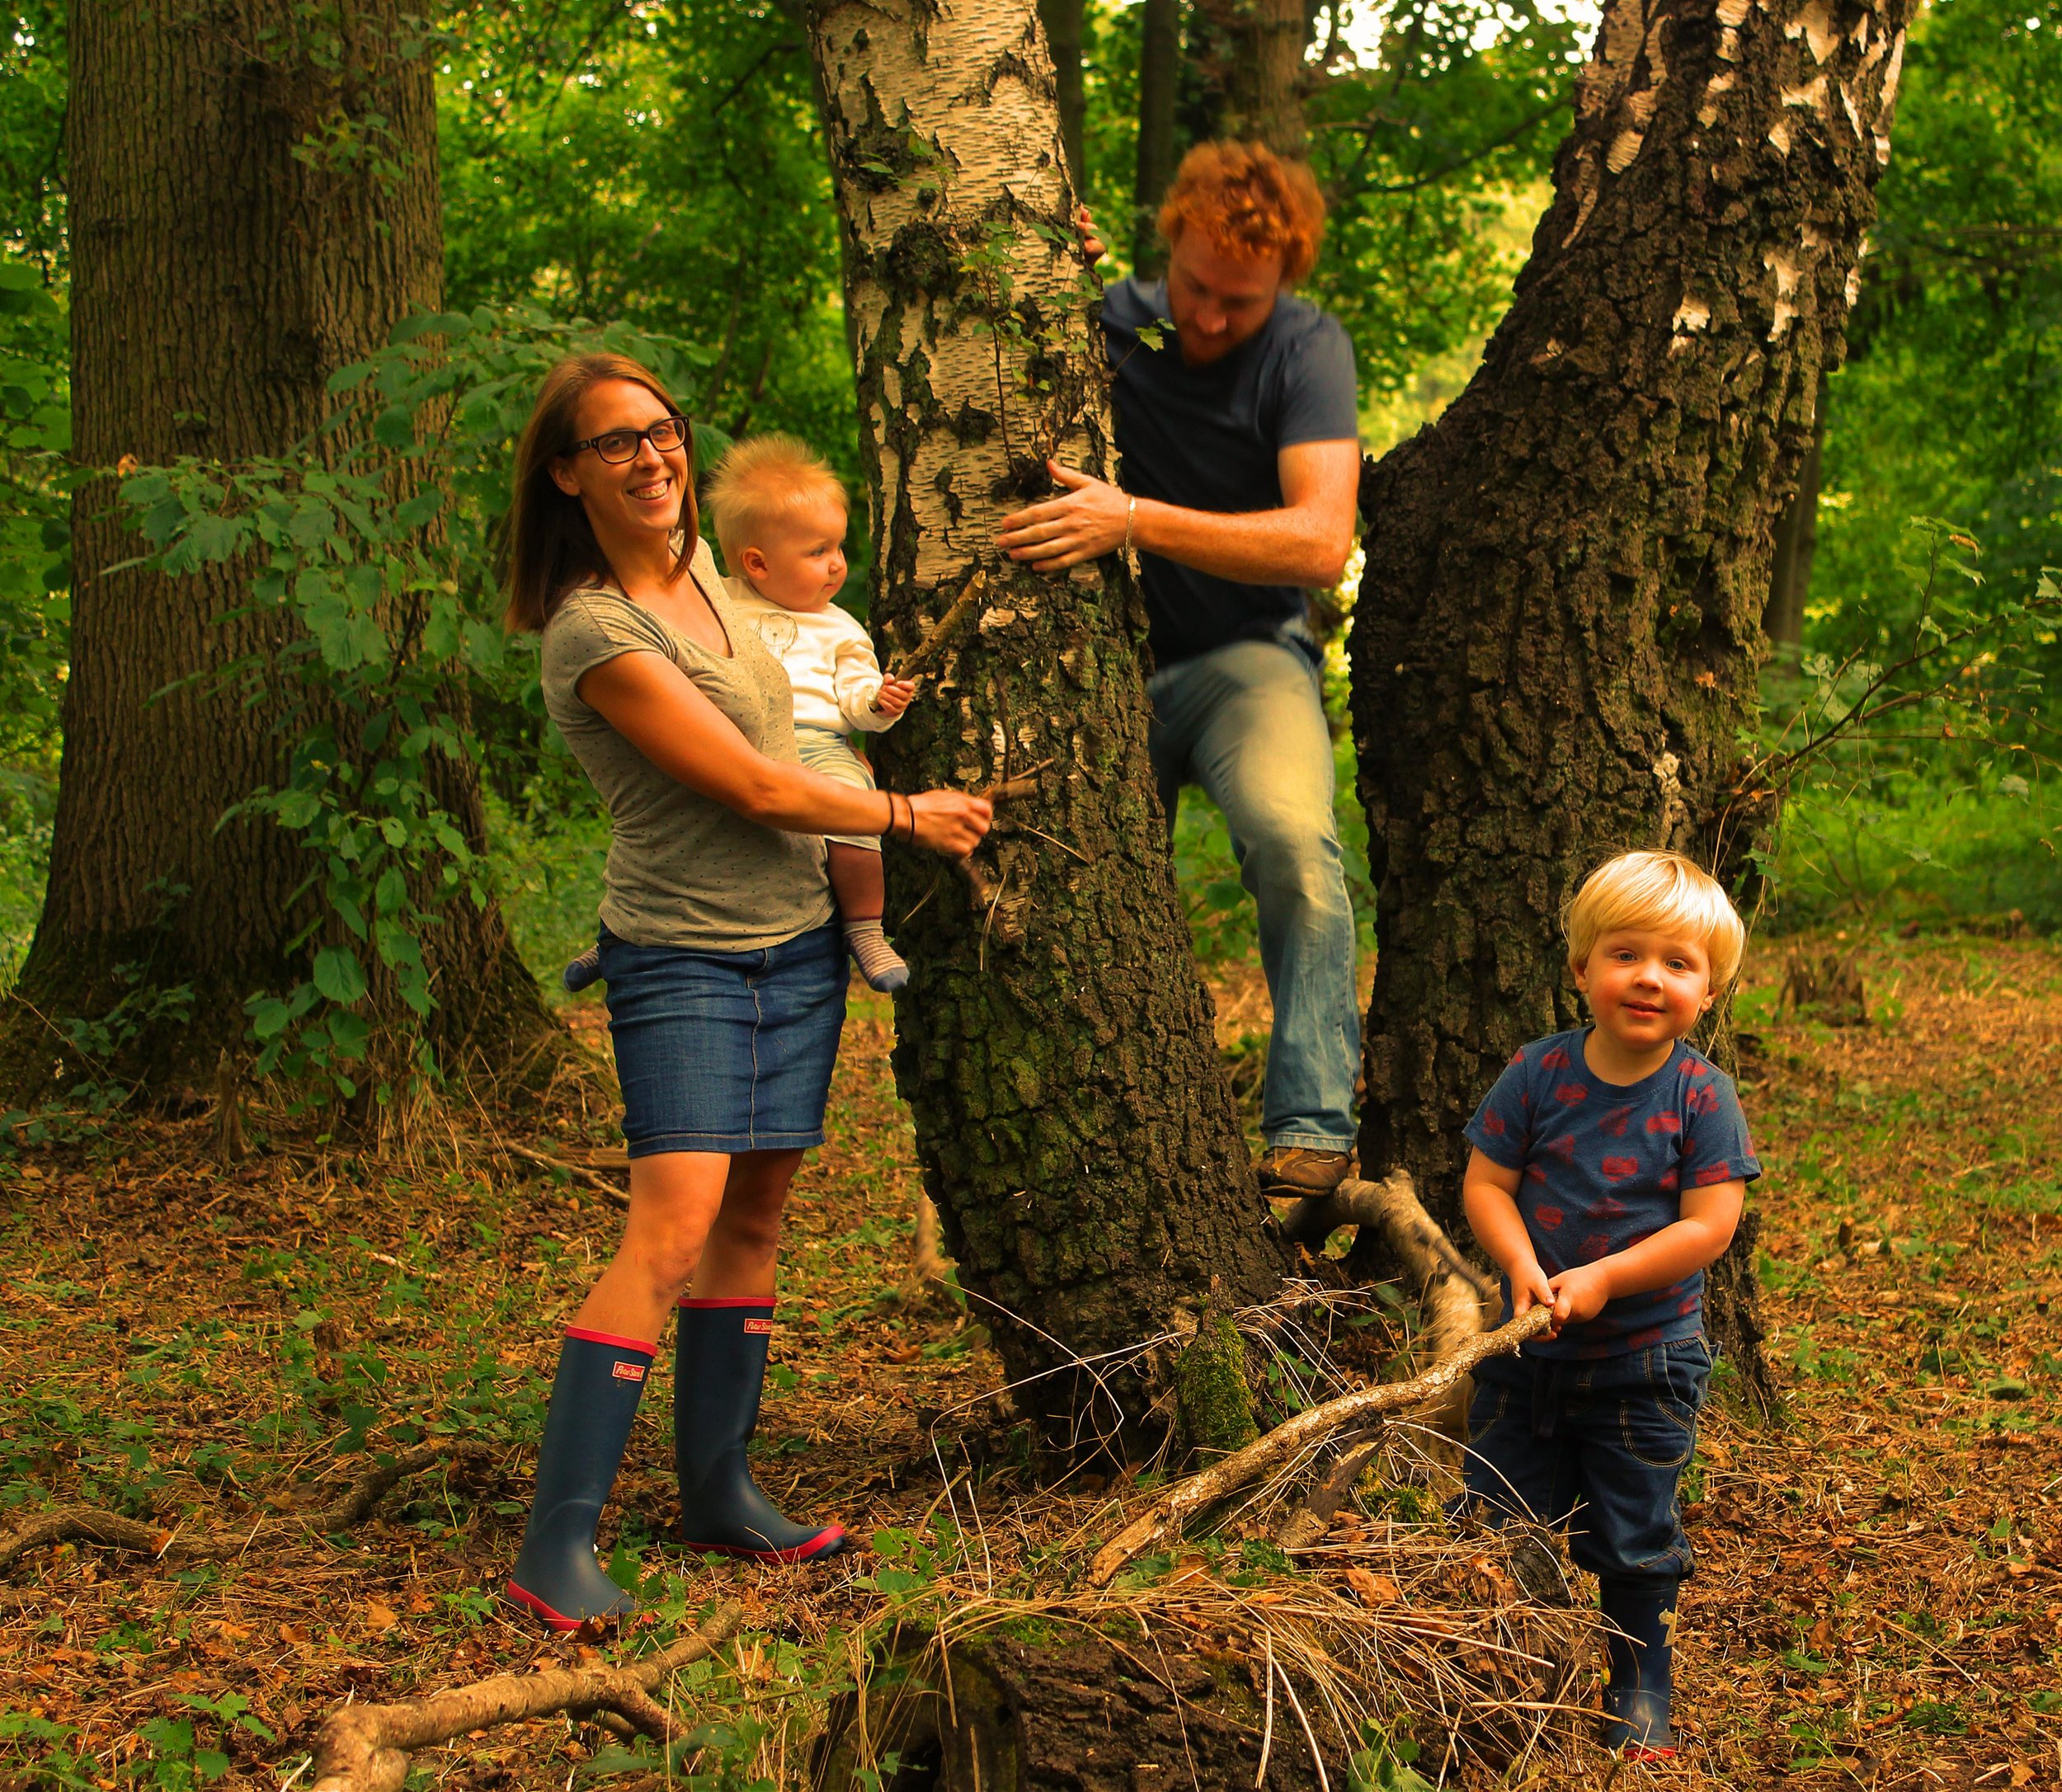 Our family portrait - Seb, Kate, Elliot and Dylan playing in the woods